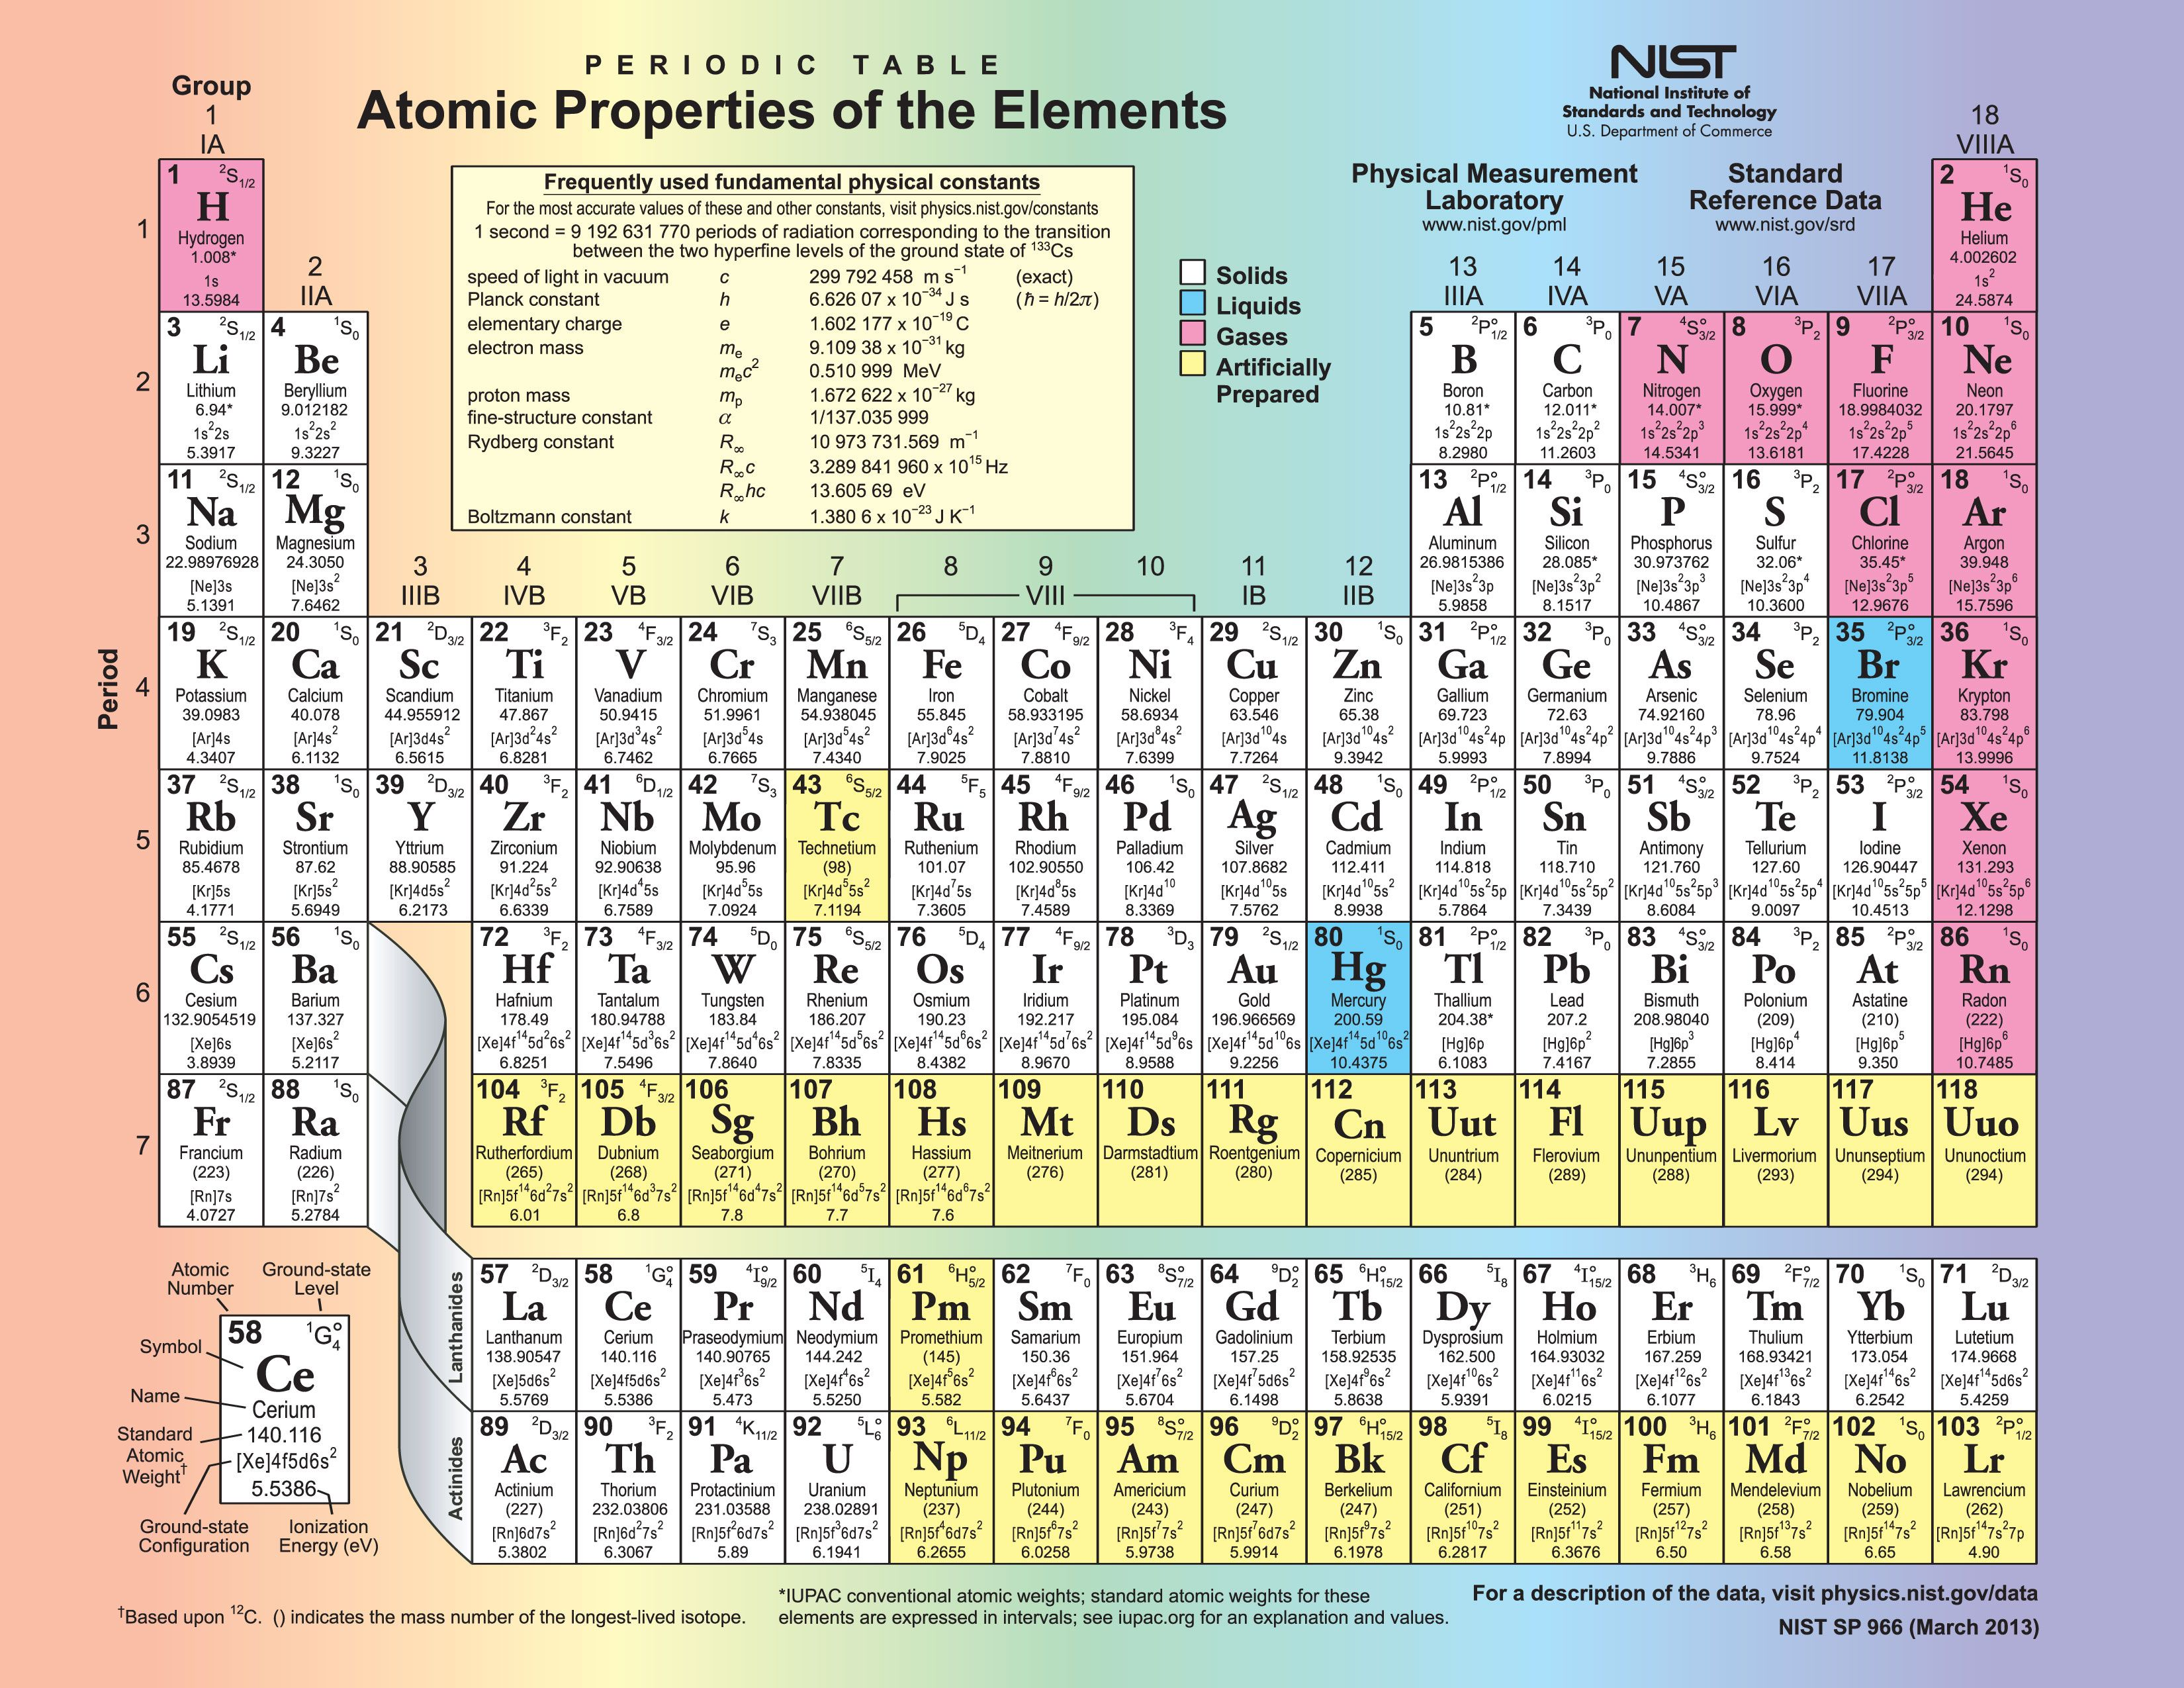 Made a poster board 20x30 costcos print shop looks good in national institute of standards and technology nist periodic table of atomic properties of the elements gamestrikefo Image collections